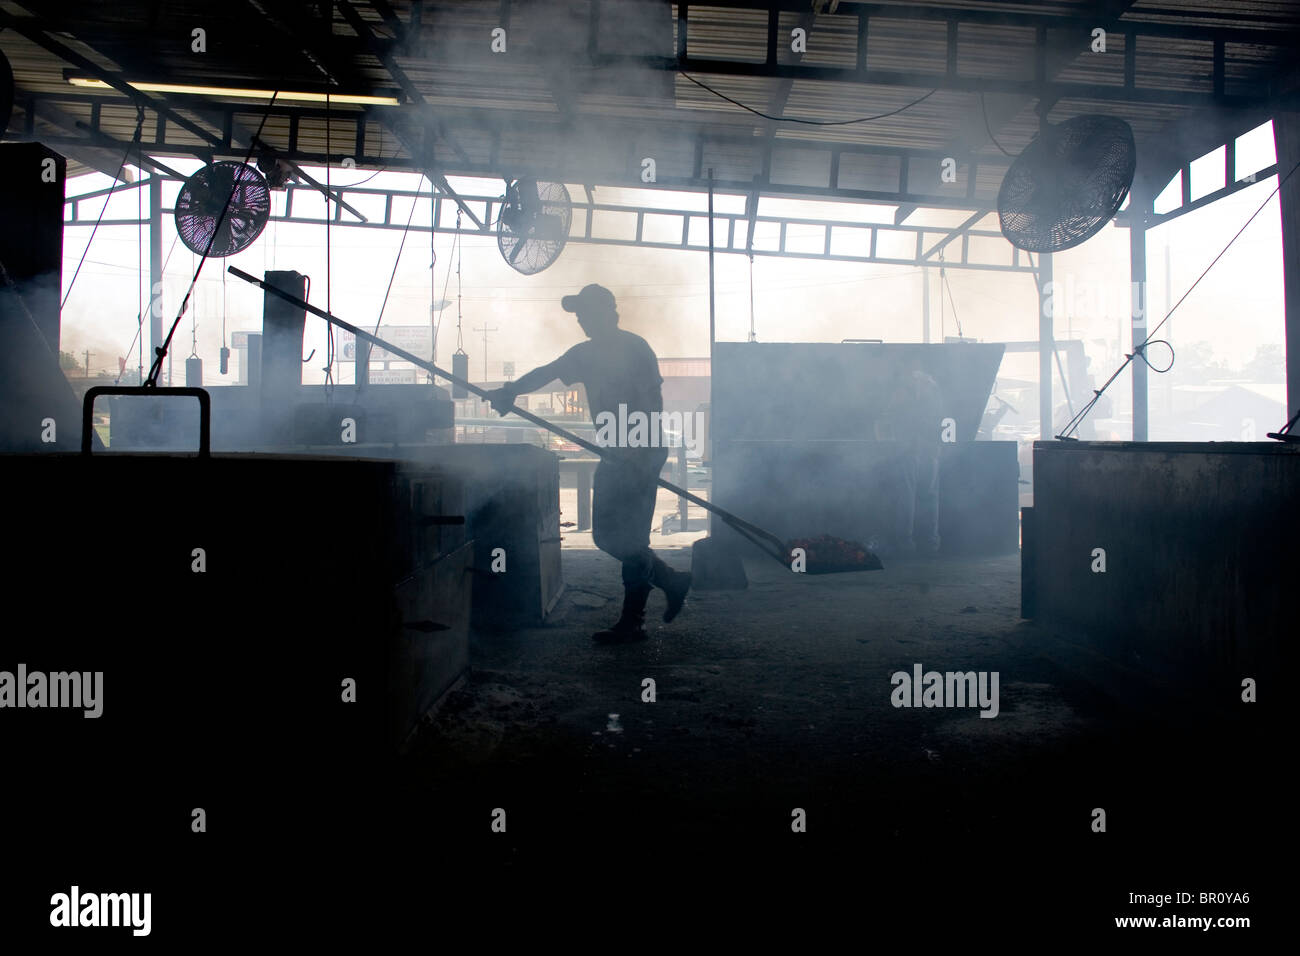 A man is silhouette as he stokes the fires at a barbeque restaurant in Llano, Texas. - Stock Image